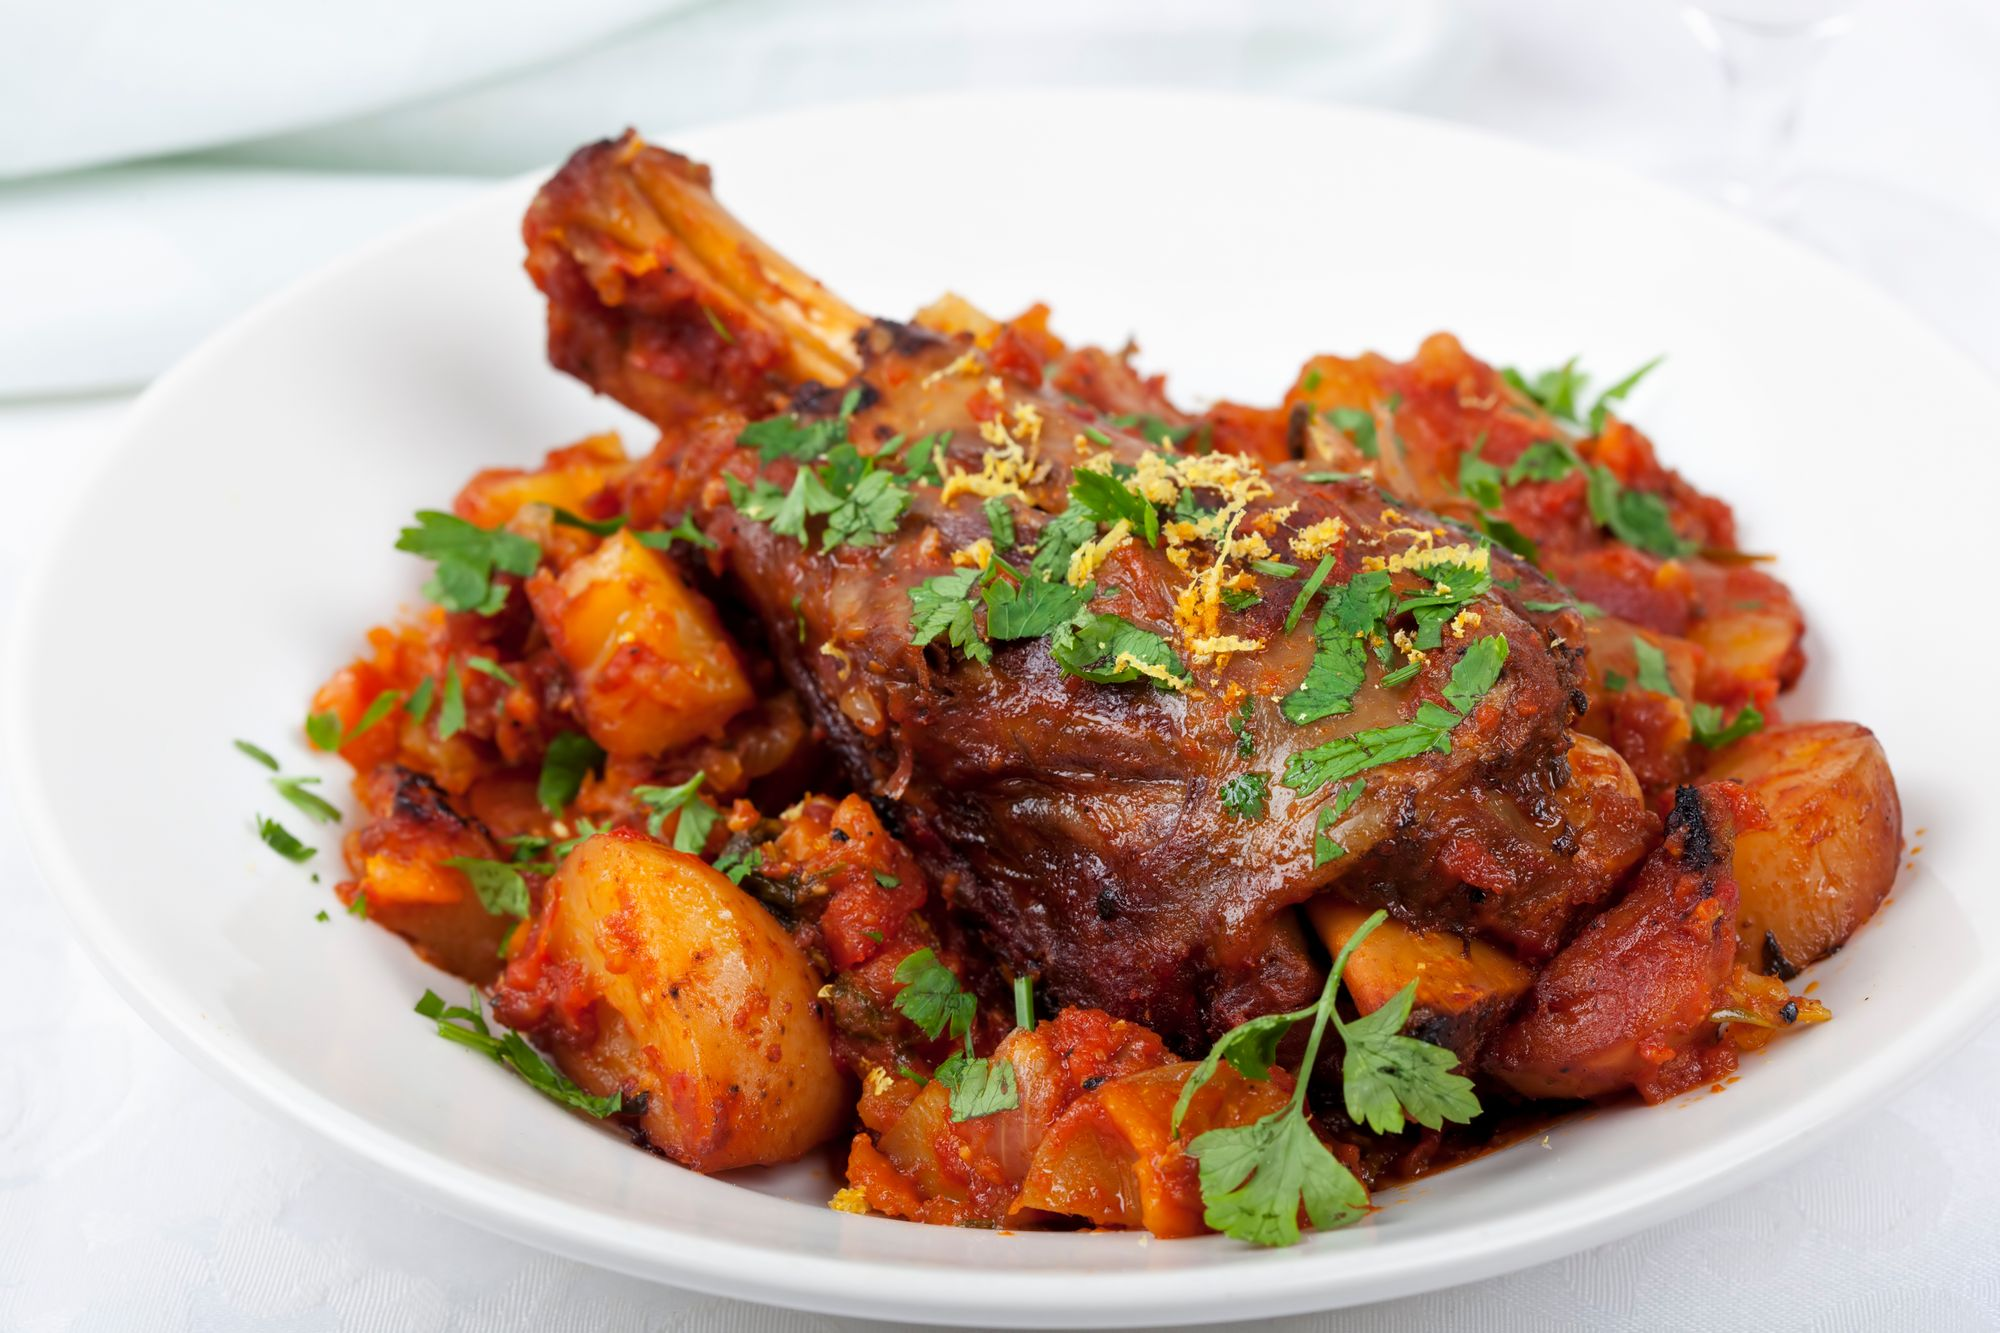 Spiced Lamb with Apricot Gravy